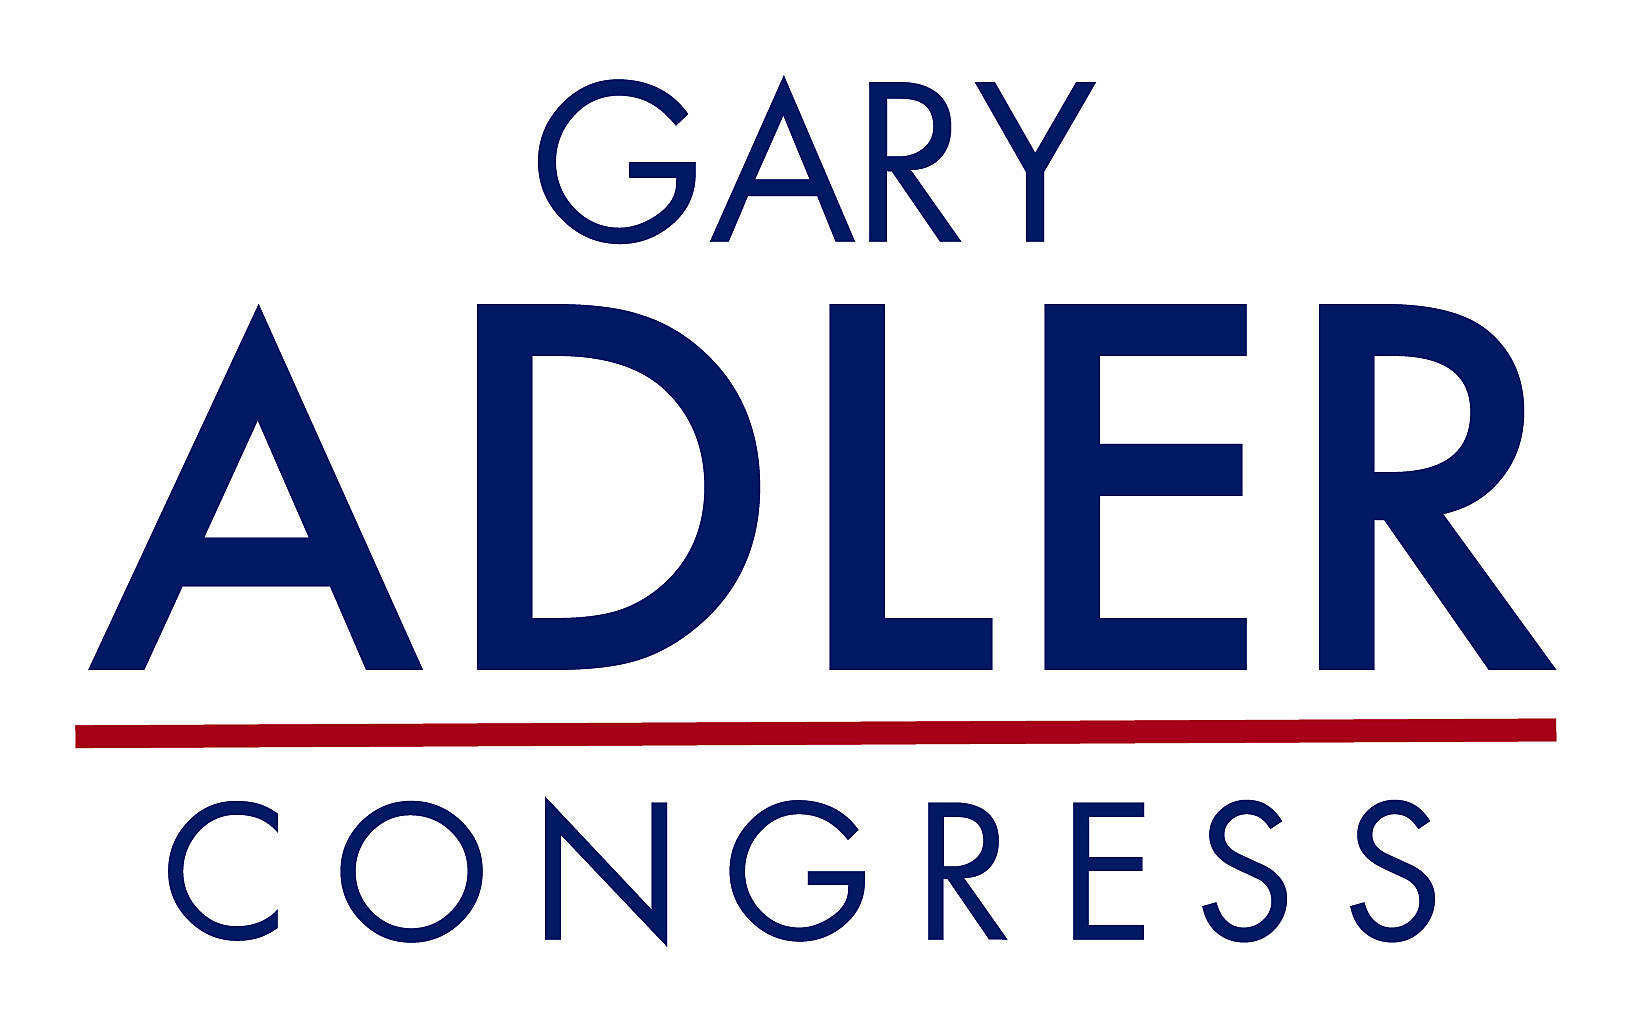 GARY ADLER FOR CONGRESS: General Fund